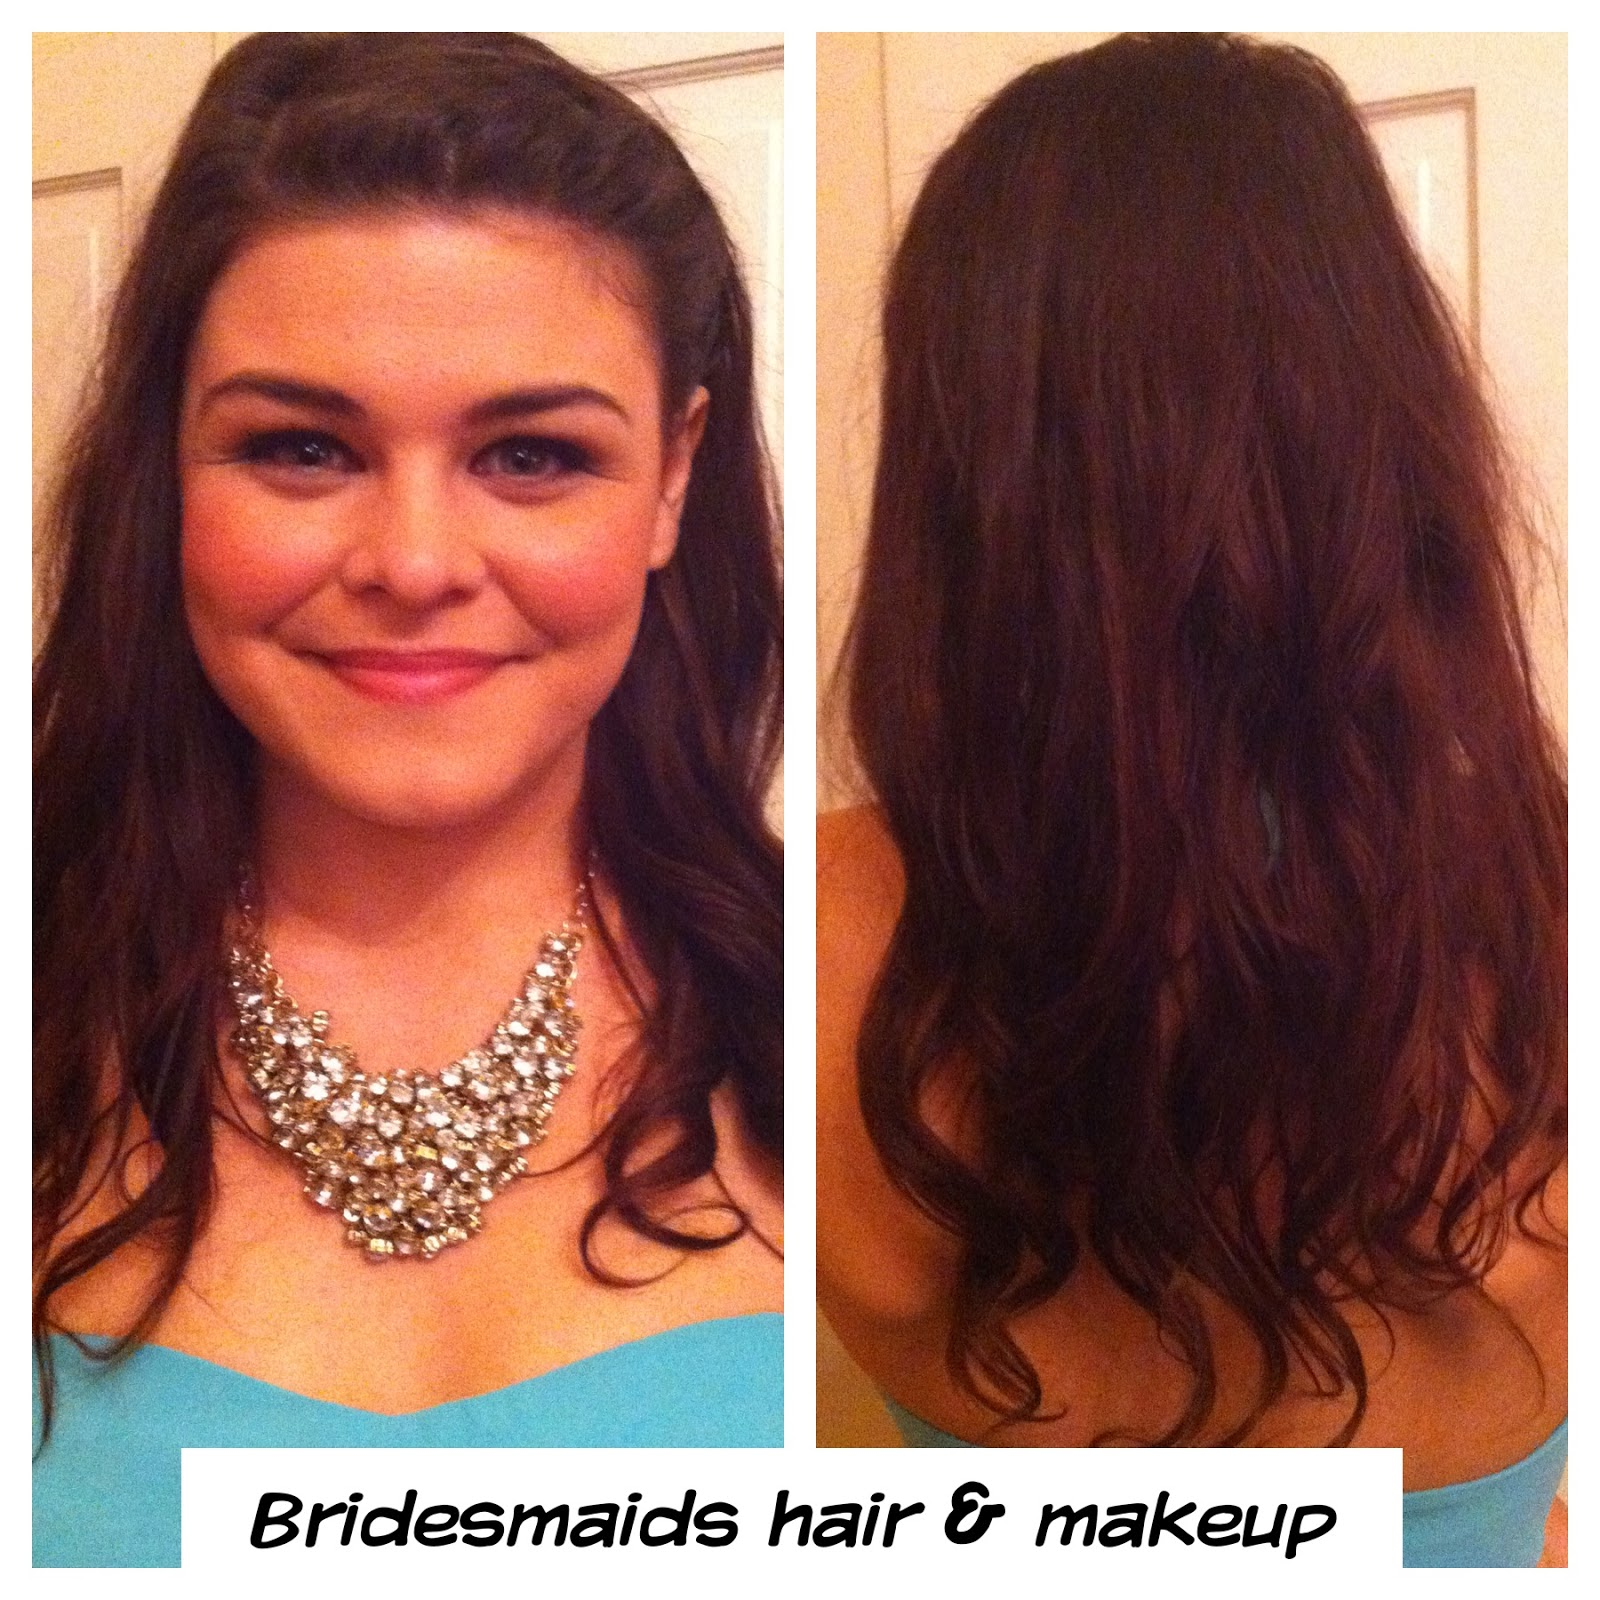 Bridesmaid Hair & Makeup Ideas